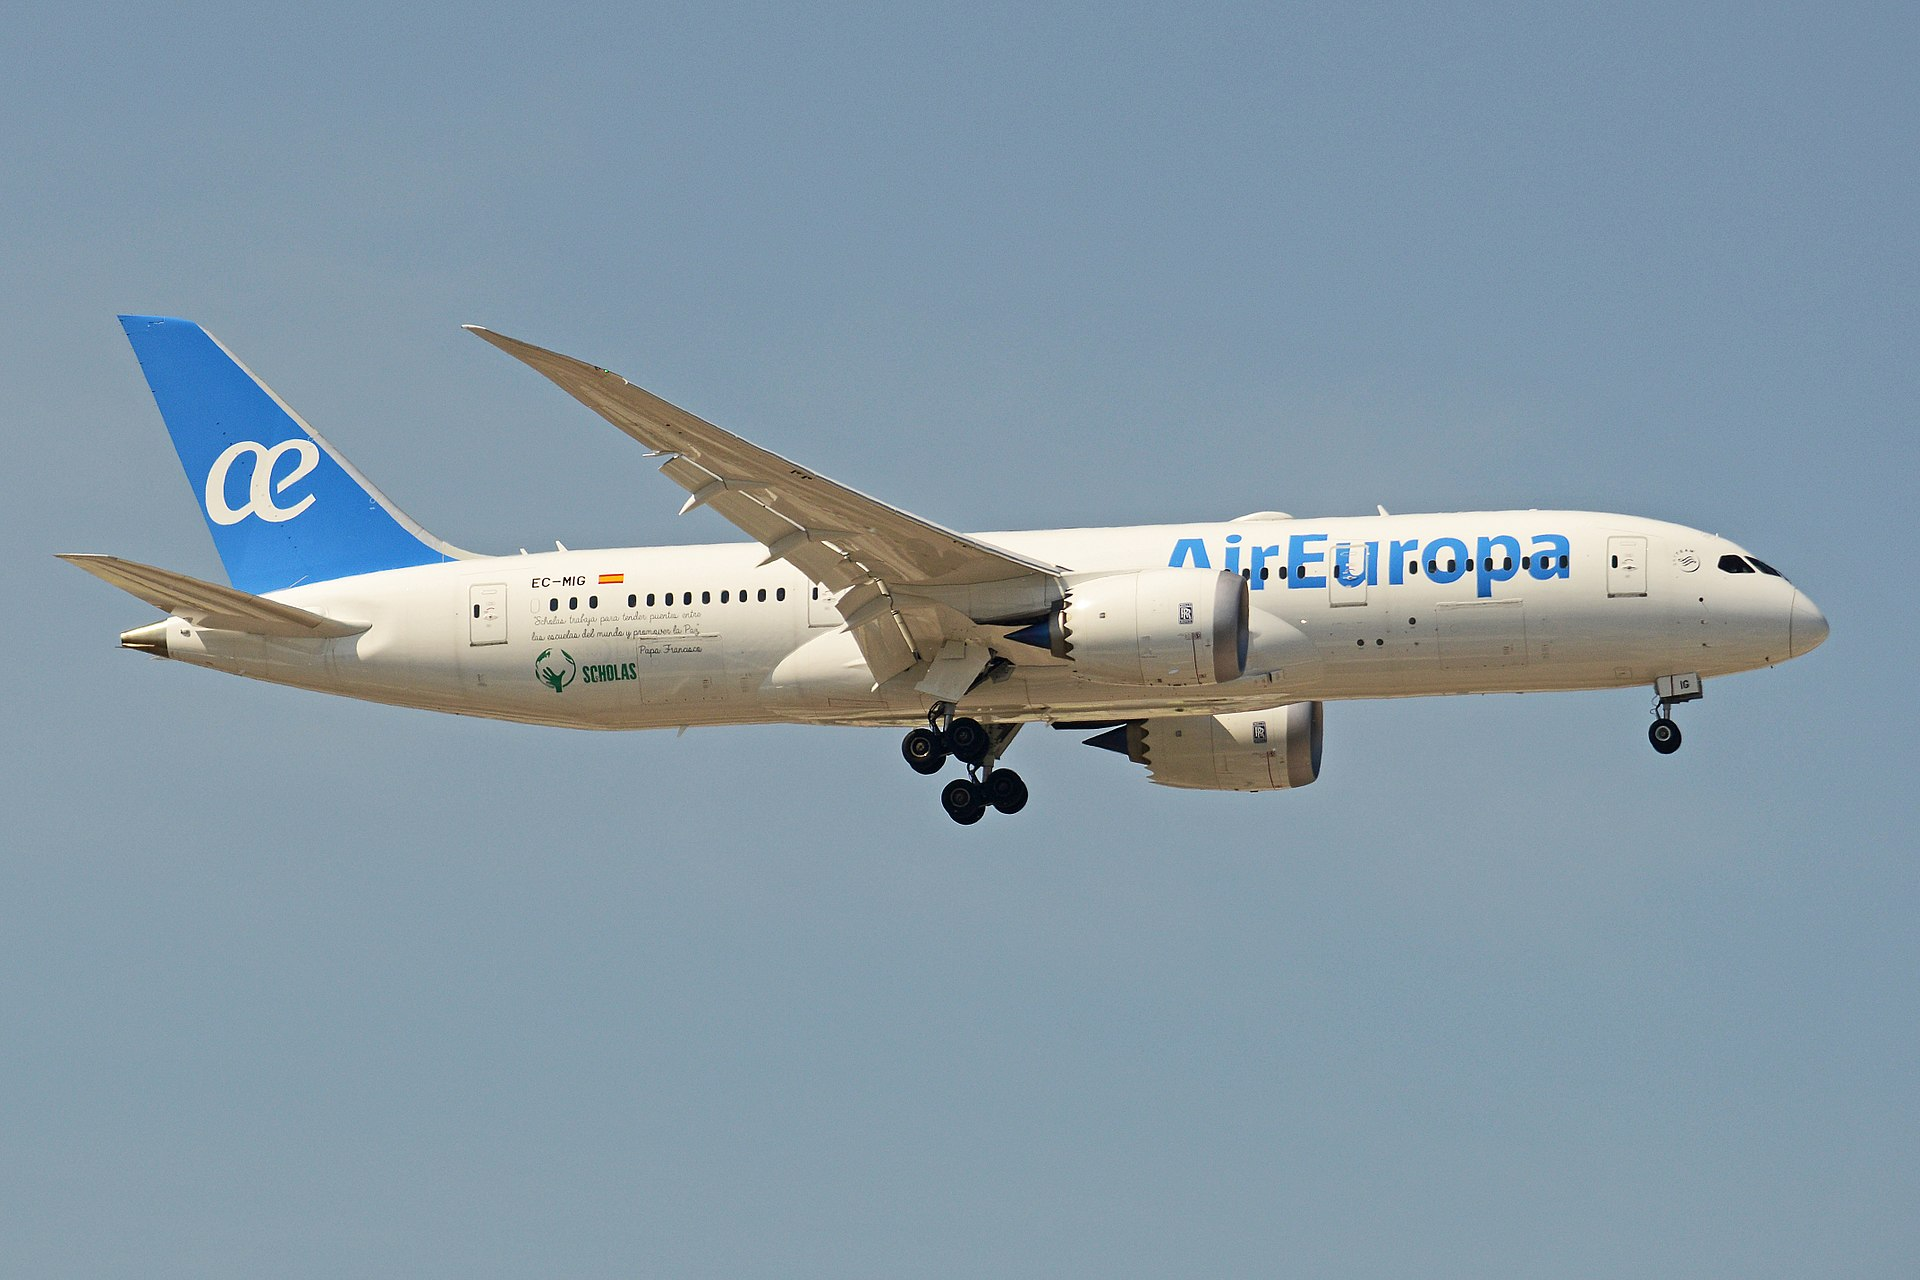 Air europa wikipedia la enciclopedia libre for Air europa oficinas en madrid